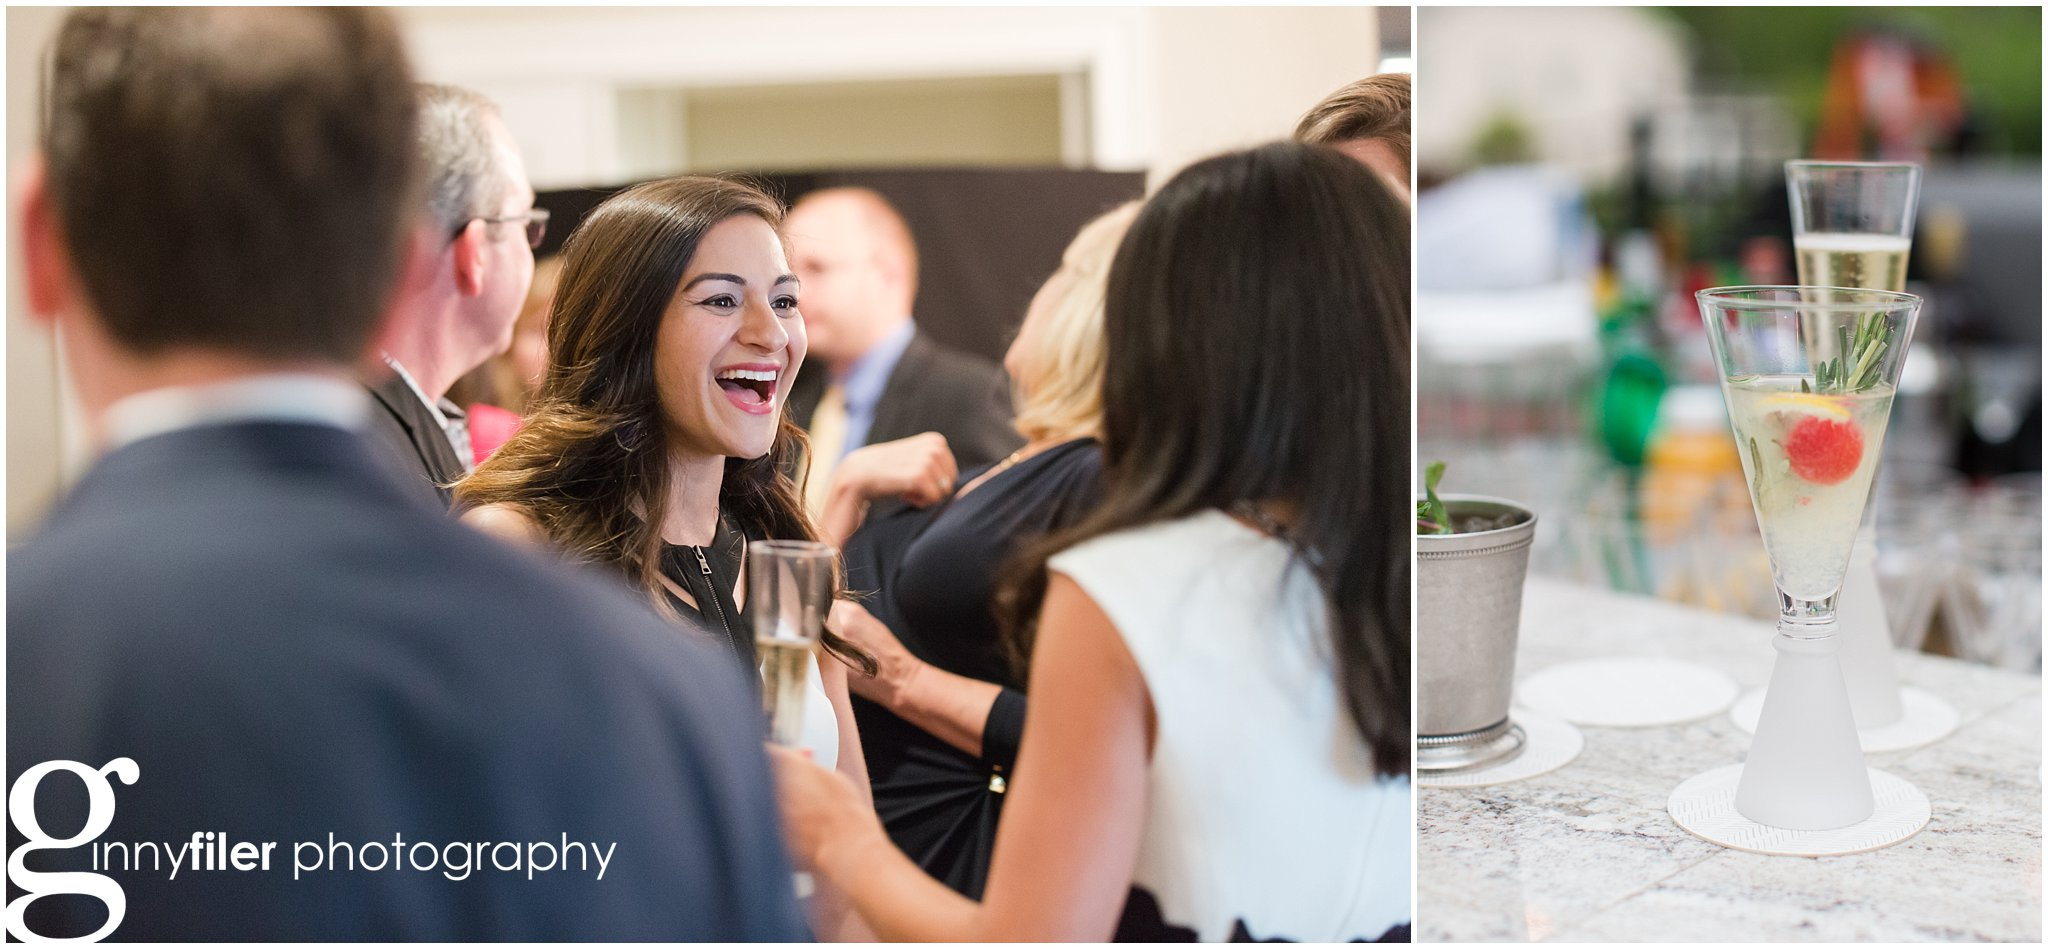 event_photography_party_0012.jpg